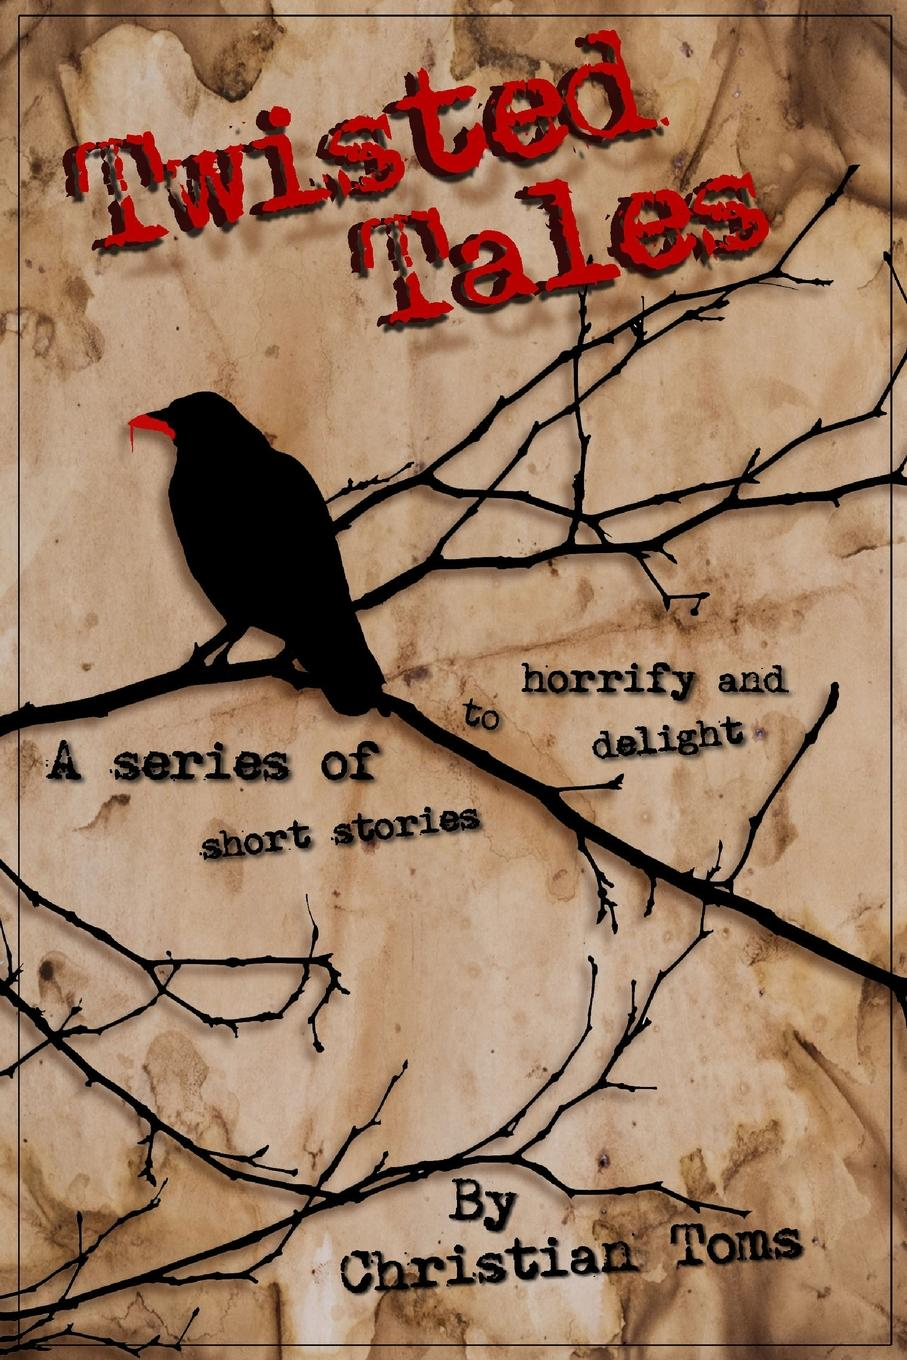 Christian Toms Twisted Tales